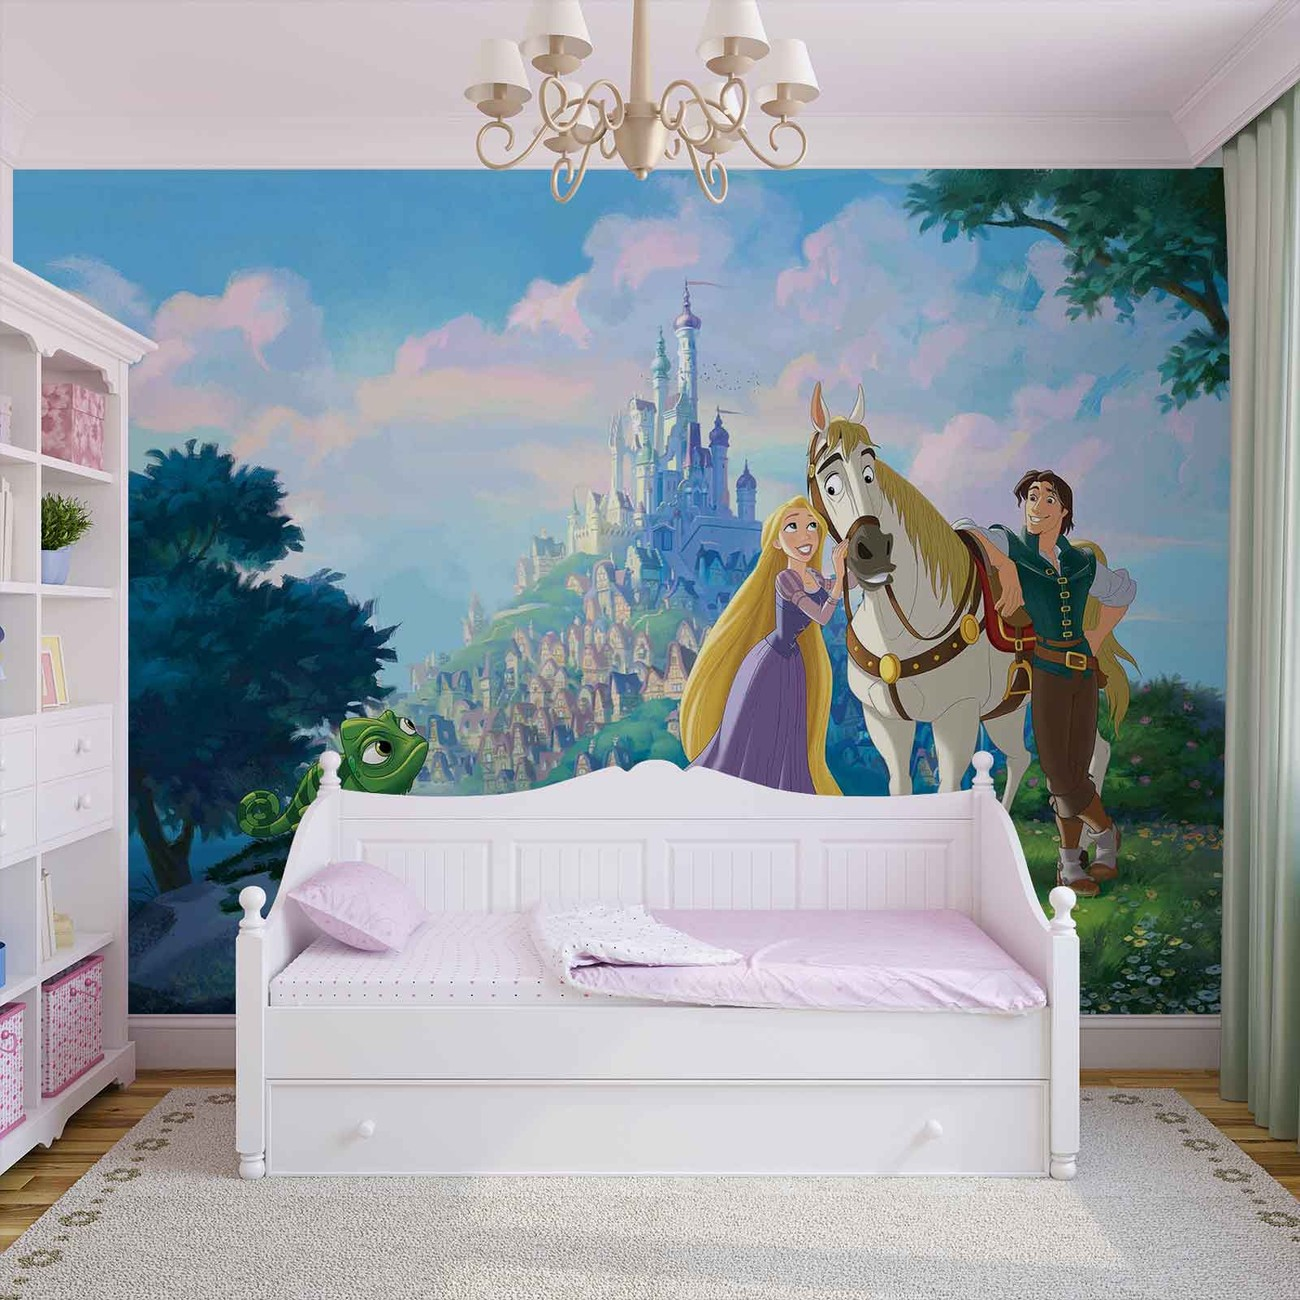 Disney princesses rapunzel wall paper mural buy at for Disney princess wall mural tesco